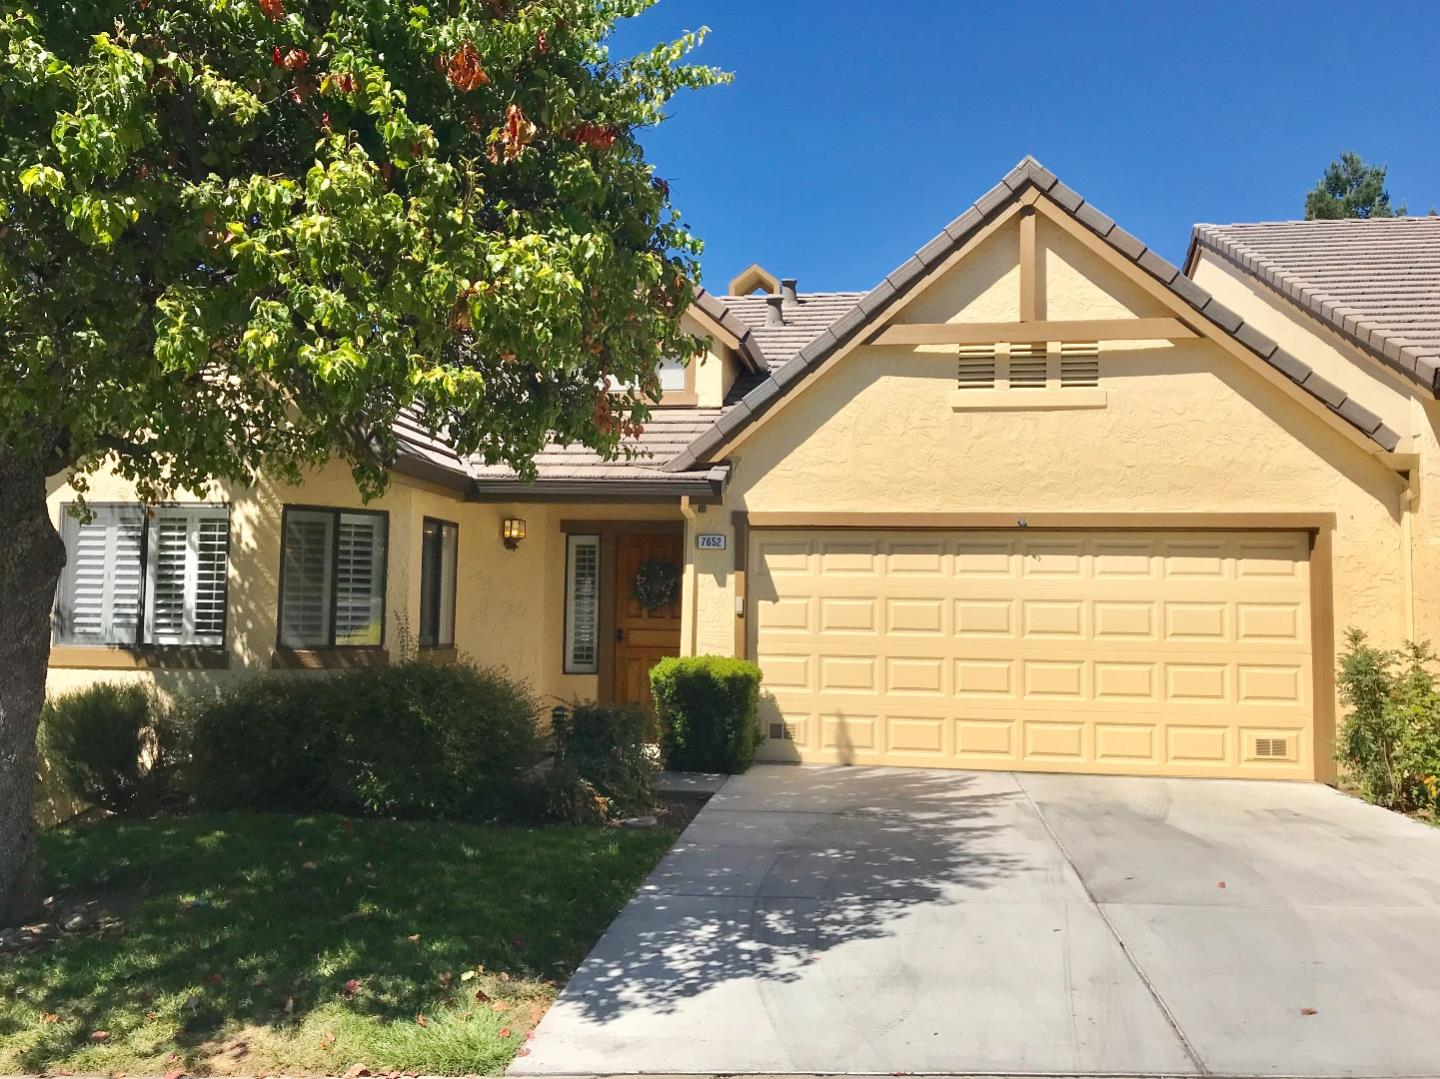 7652 Falkirk Drive San Jose, CA 95135 - MLS #: ML81722663